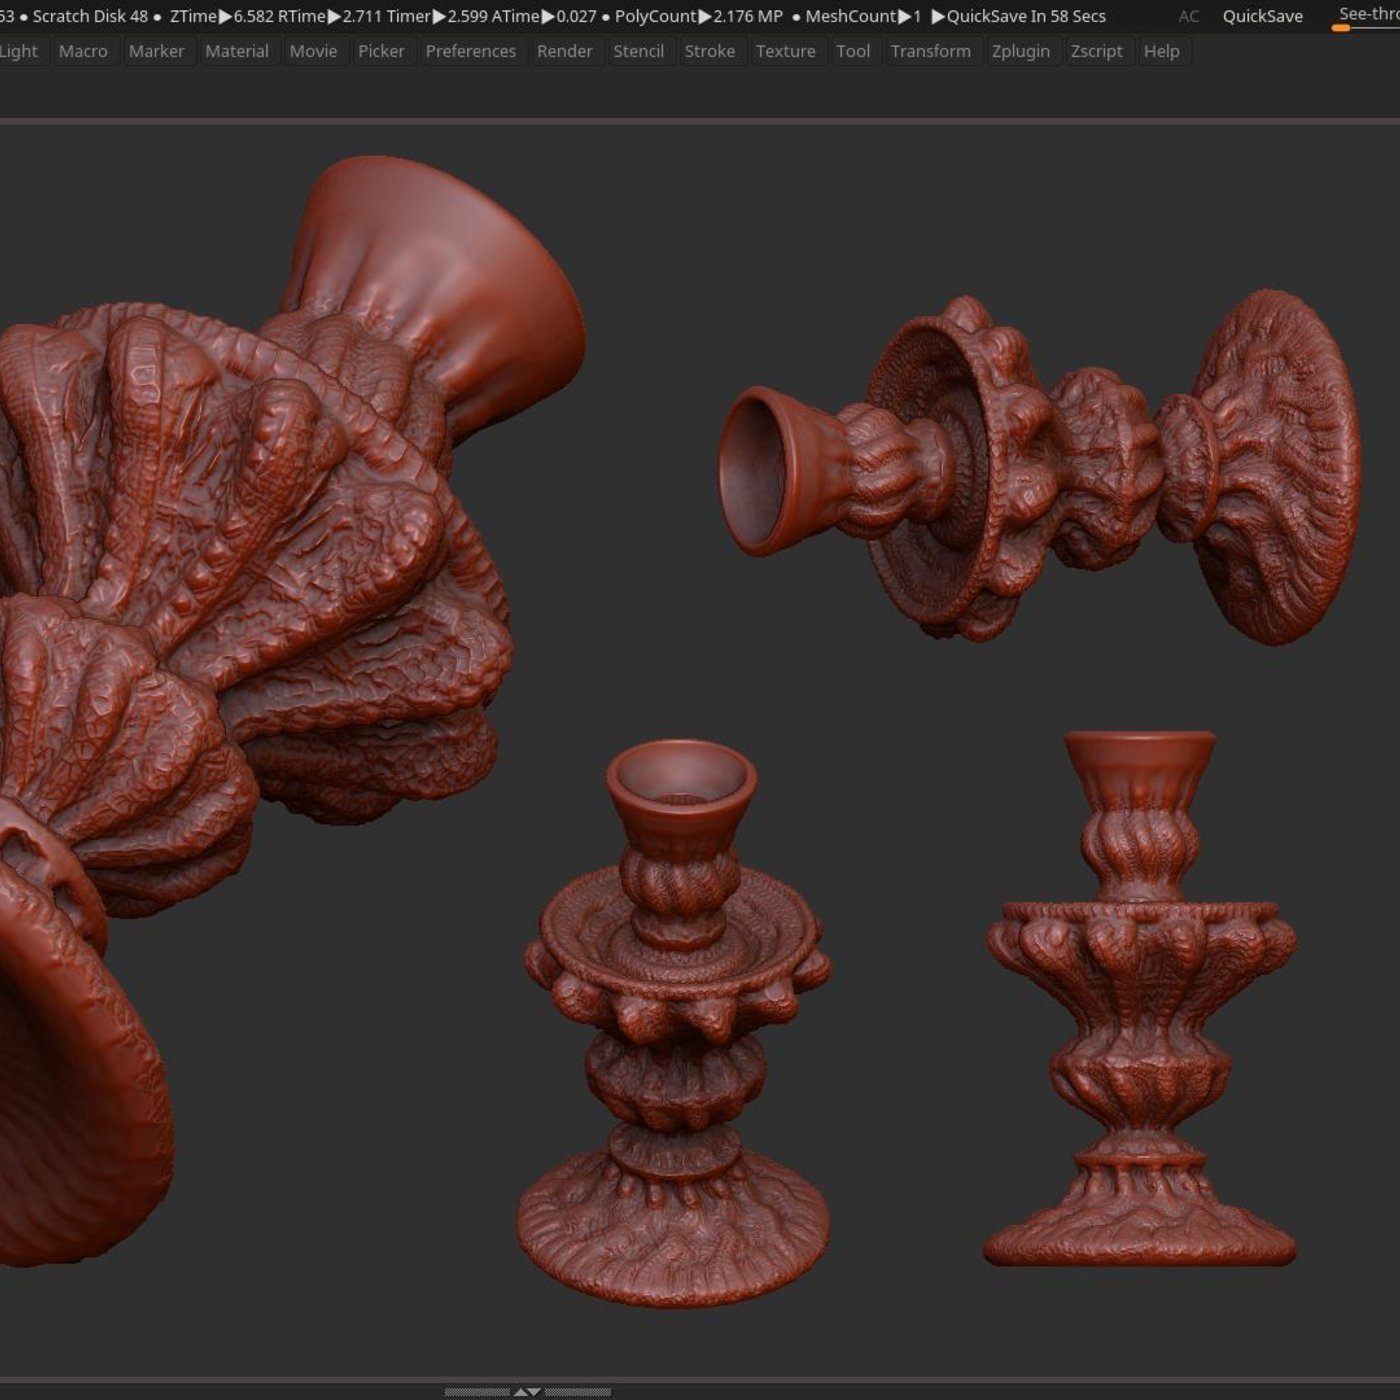 classic candlestick 3dprint and low poly model PBR Low-poly 3D model